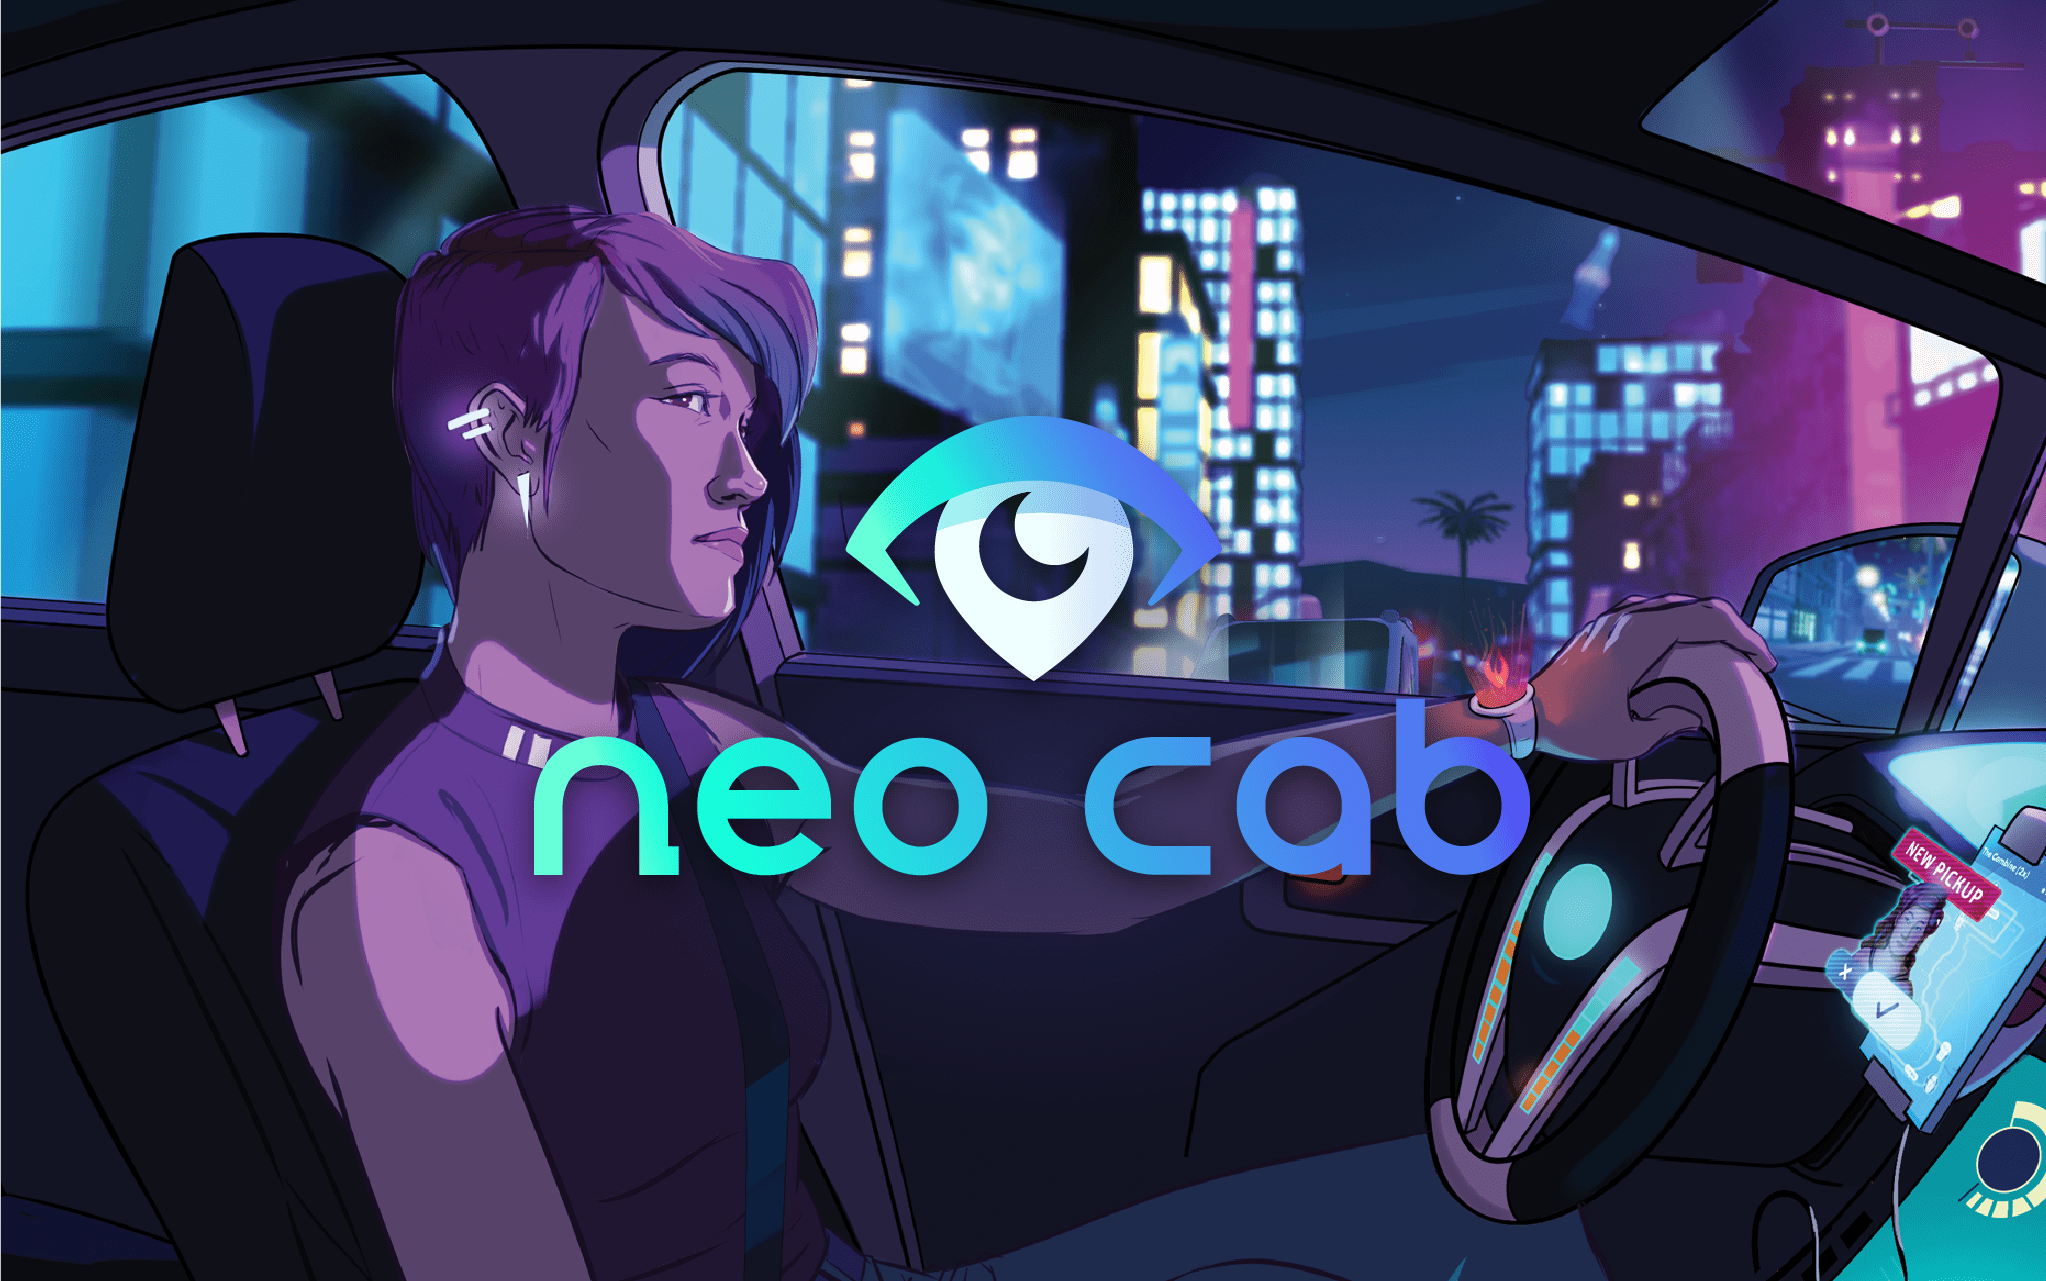 Neo Cab Cruises Onto Nintendo Switch With A Demo, Set For An October Release Date